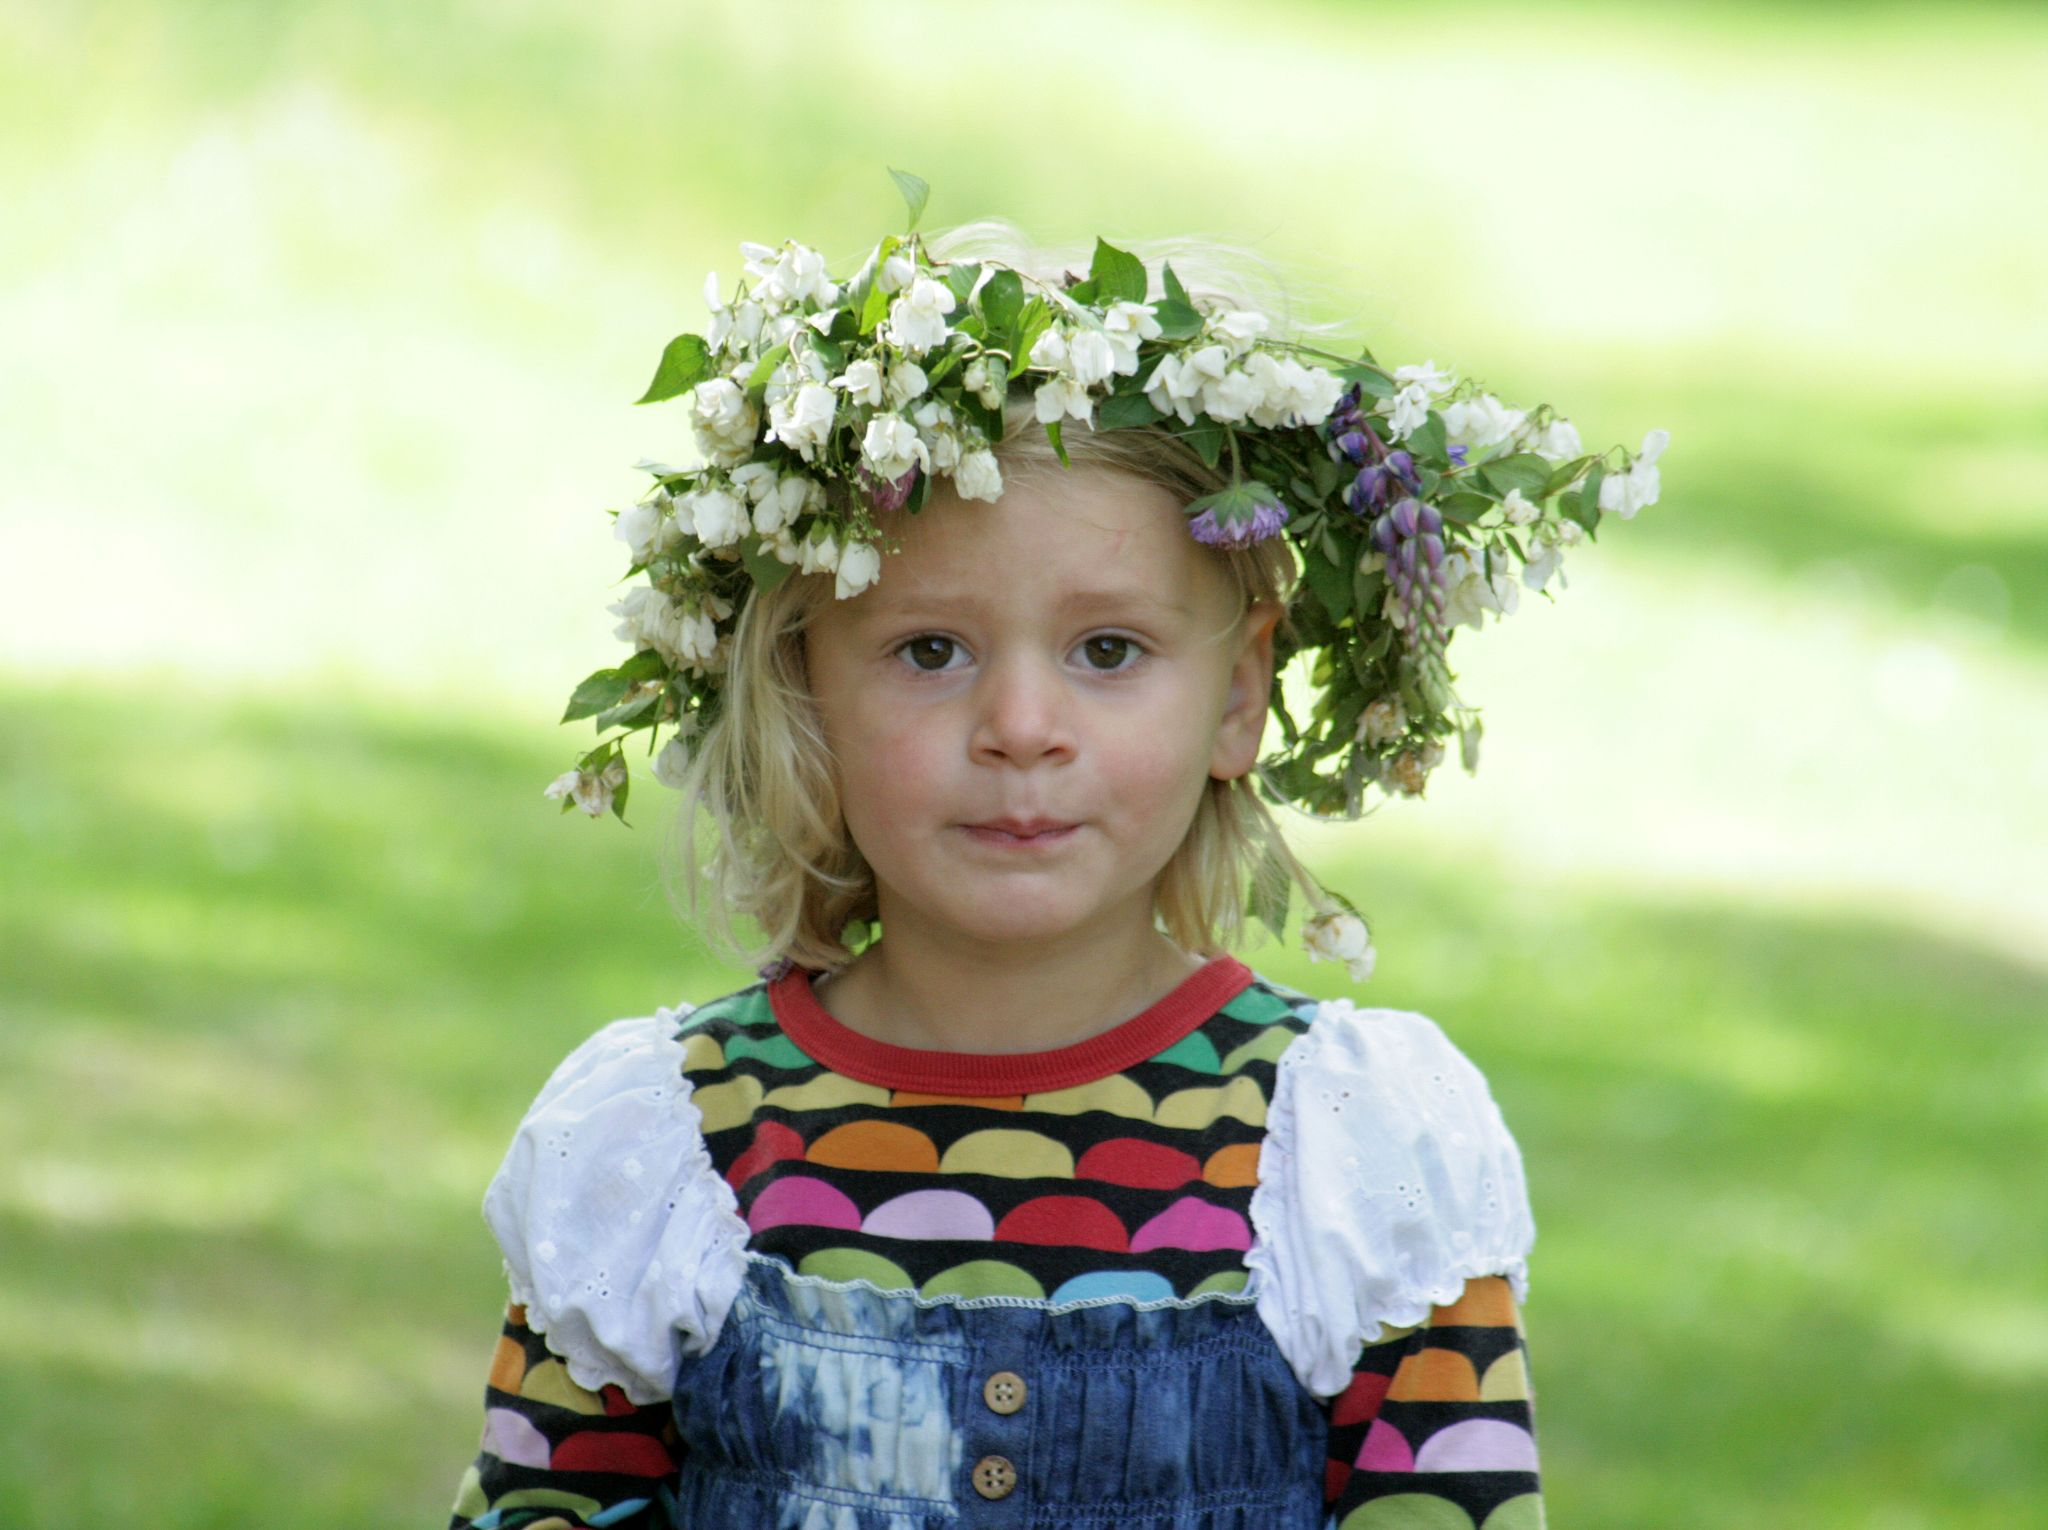 Swedish Midsummer Girl by monanorrman